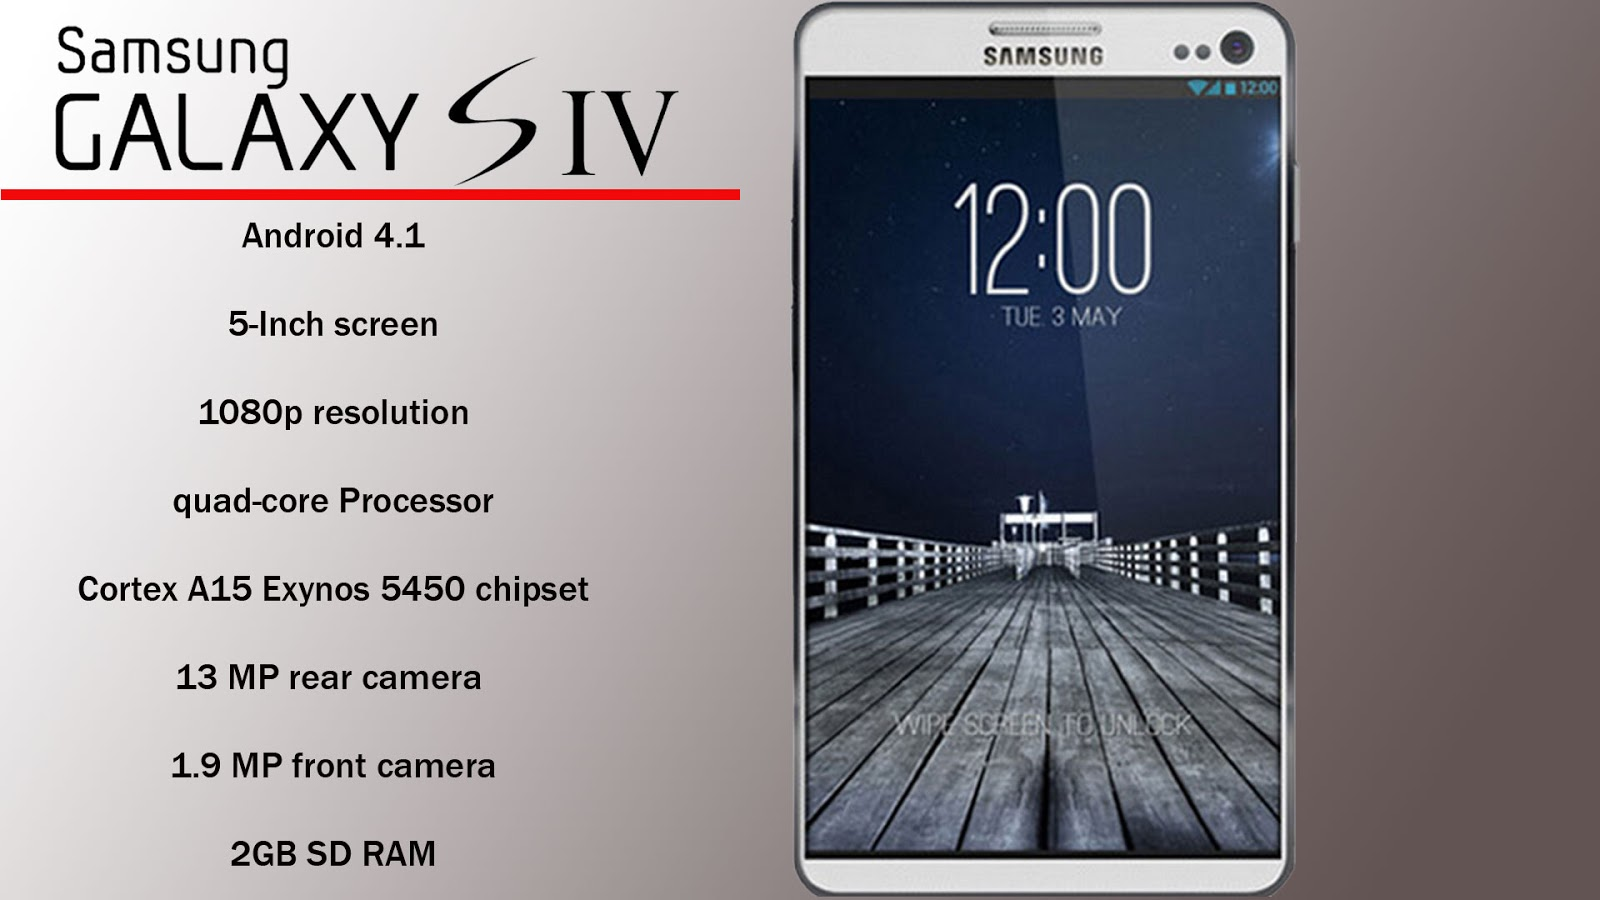 Samsung Galaxy S4 rumored specs